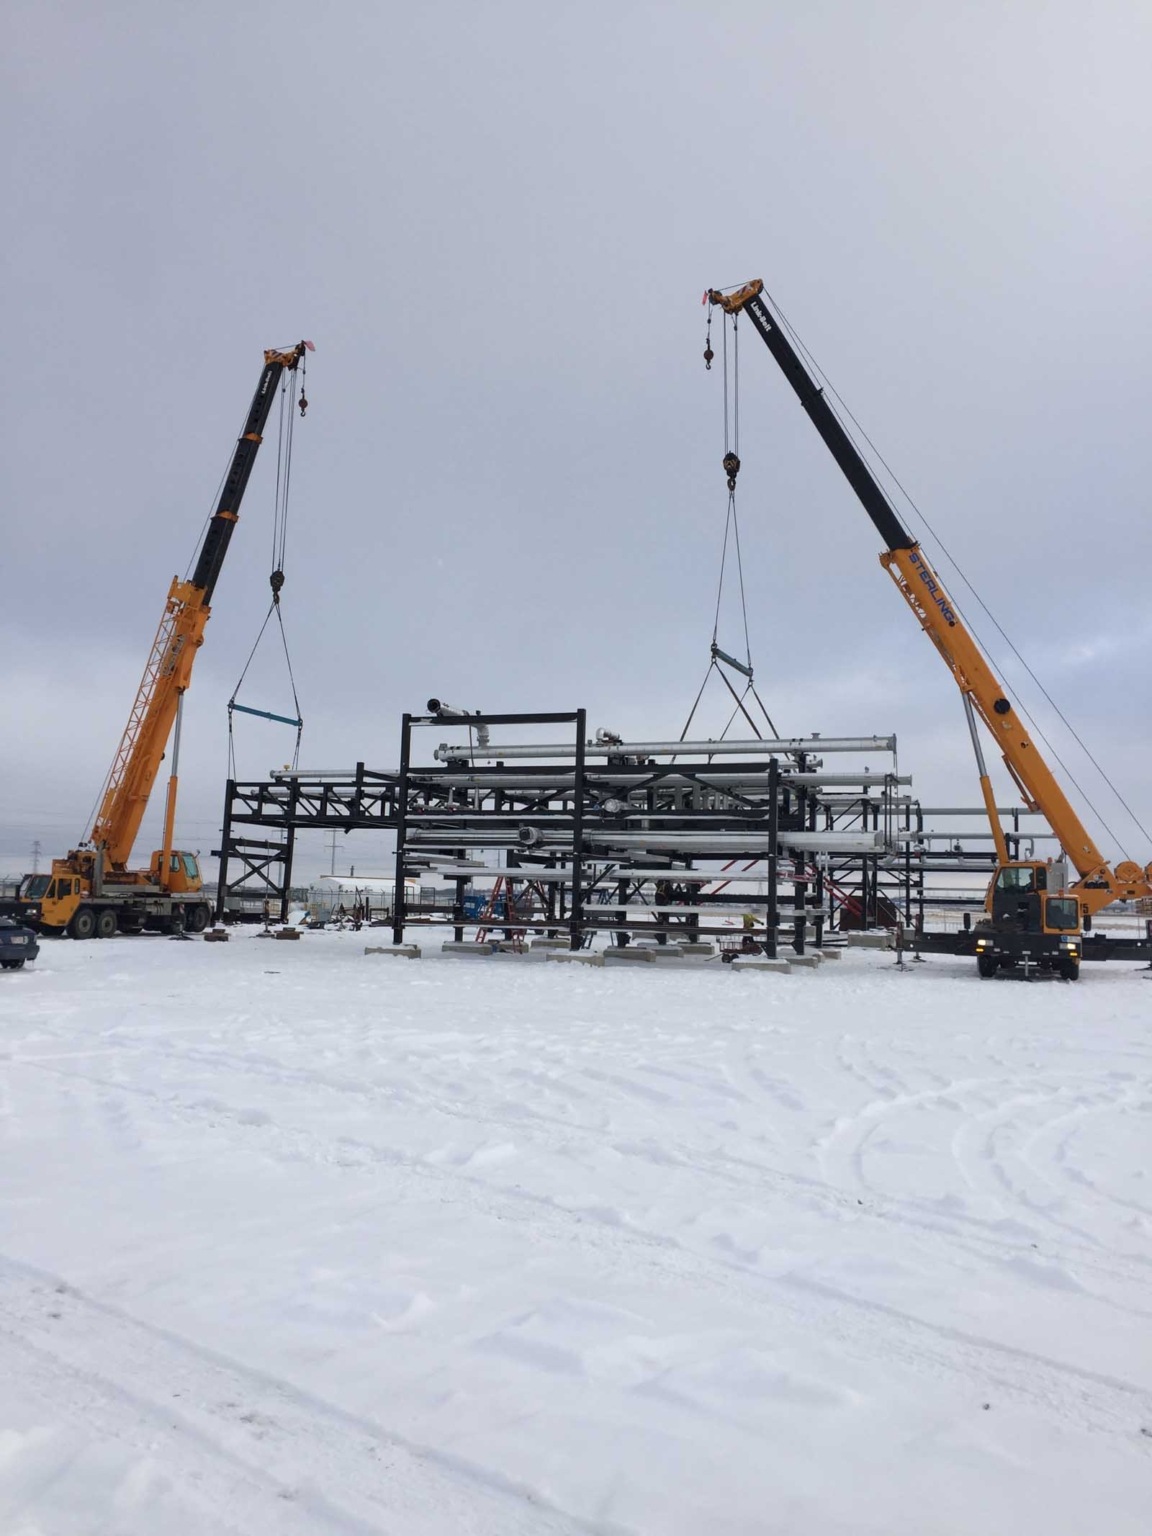 Cranes in snow loading pipes